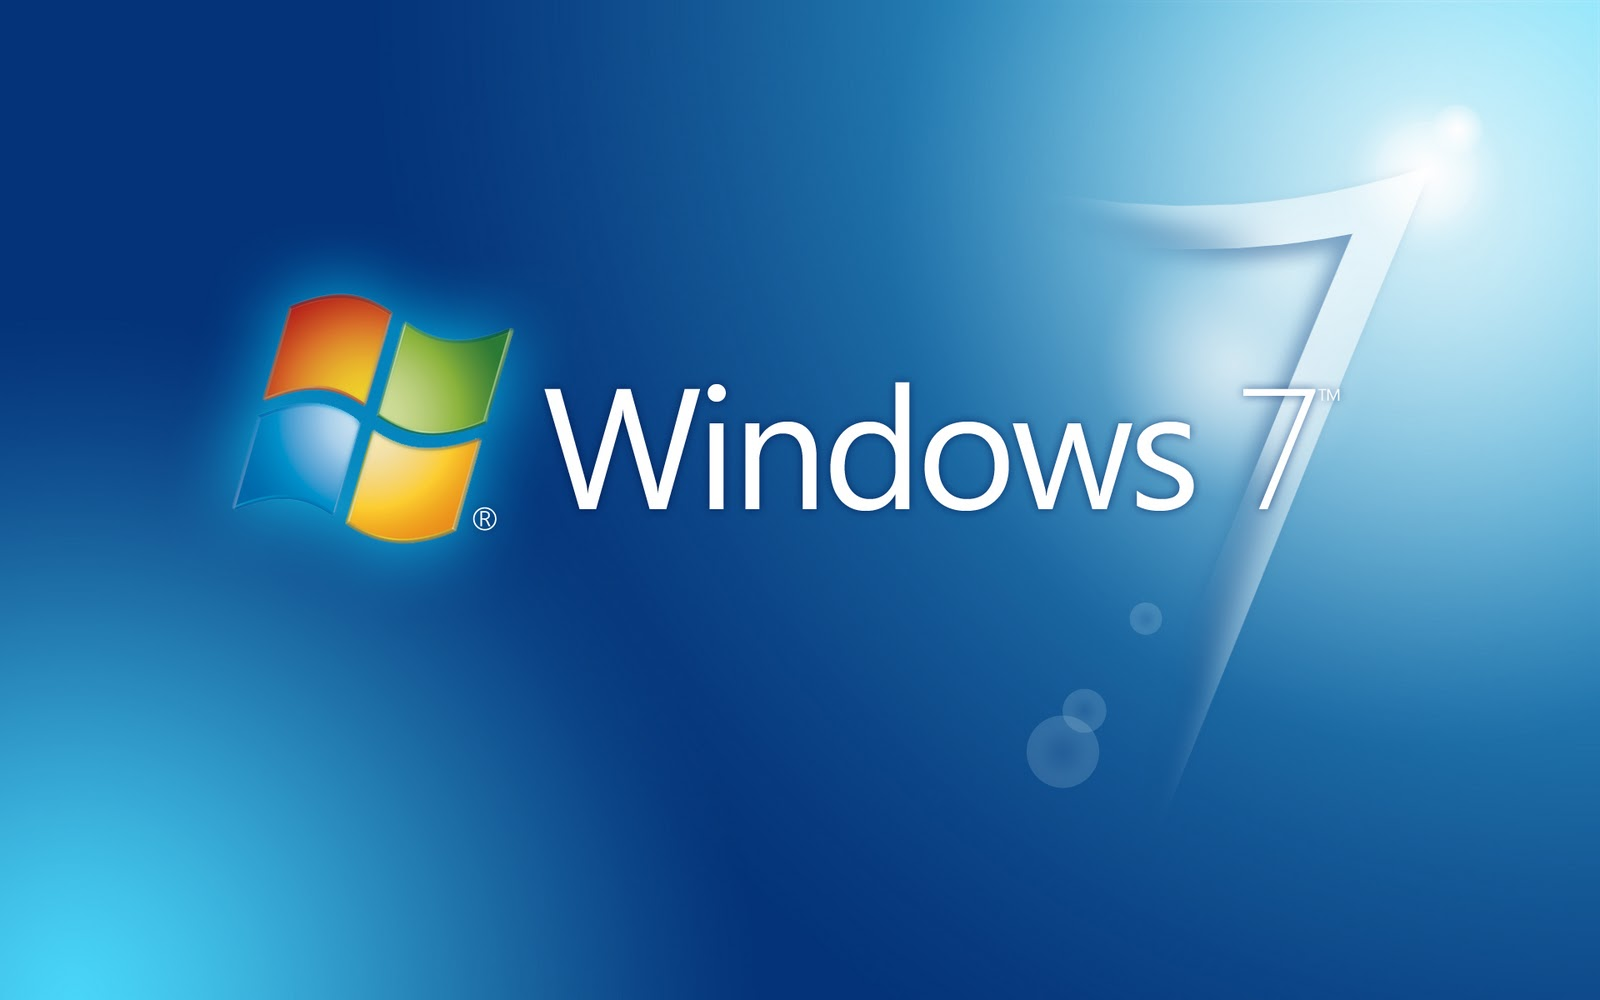 How to Install Windows 7 from a USB